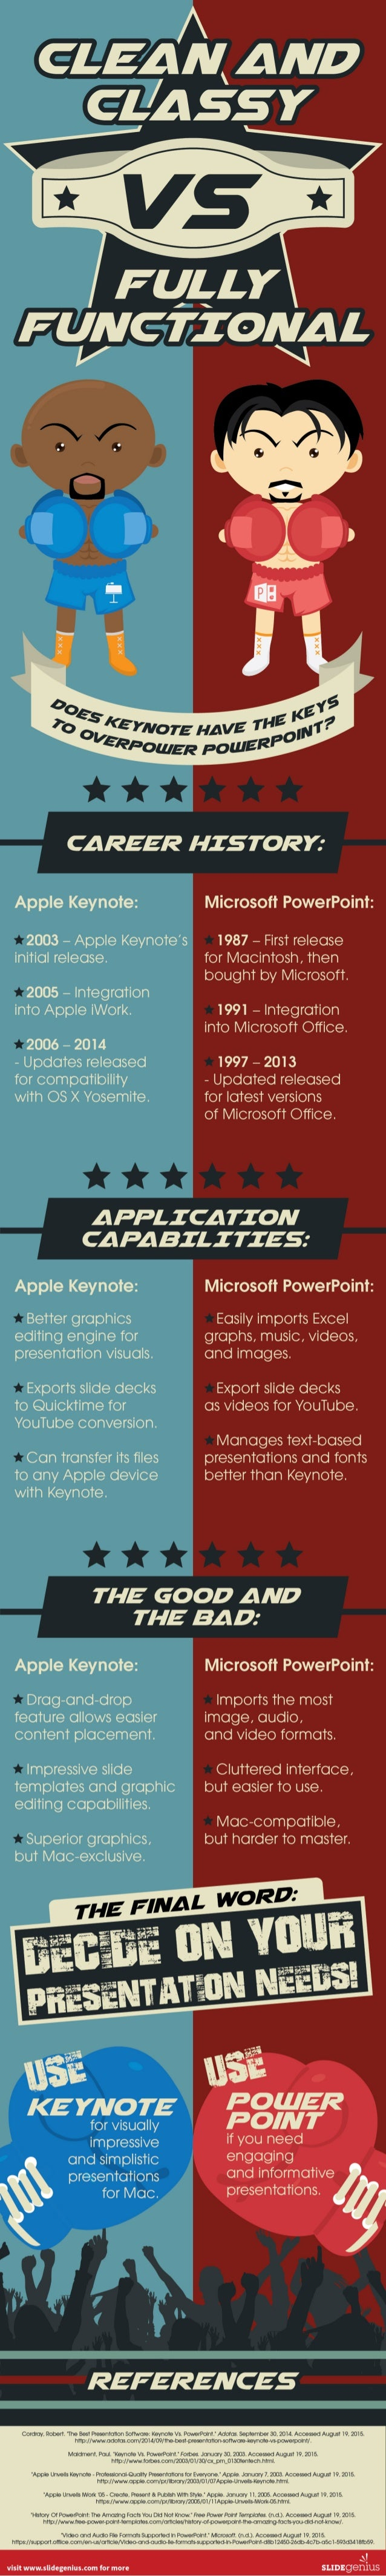 CLEA/ lII A ND  CL/ A 55 Y     I-'ql, LY I-'Ll¢vc1'1'onI'A L  CAREER I-I1'STORY. '  Apple Keynote:  Microsoft PowerPoint: ...